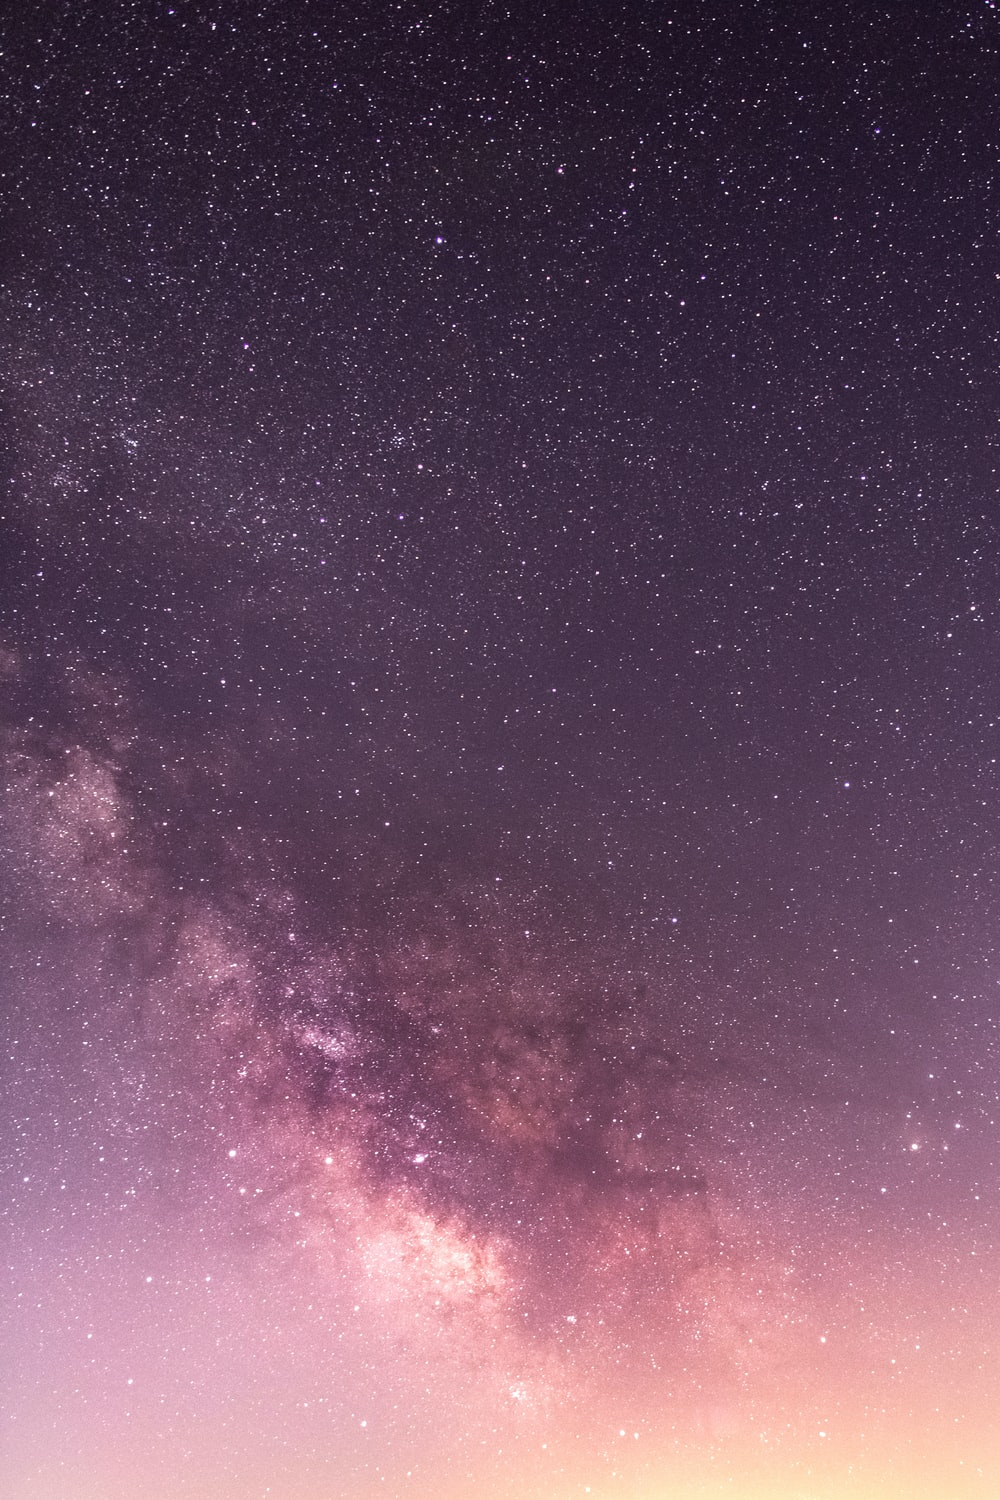 Purple Night Sky Pictures Download Free Images On Unsplash